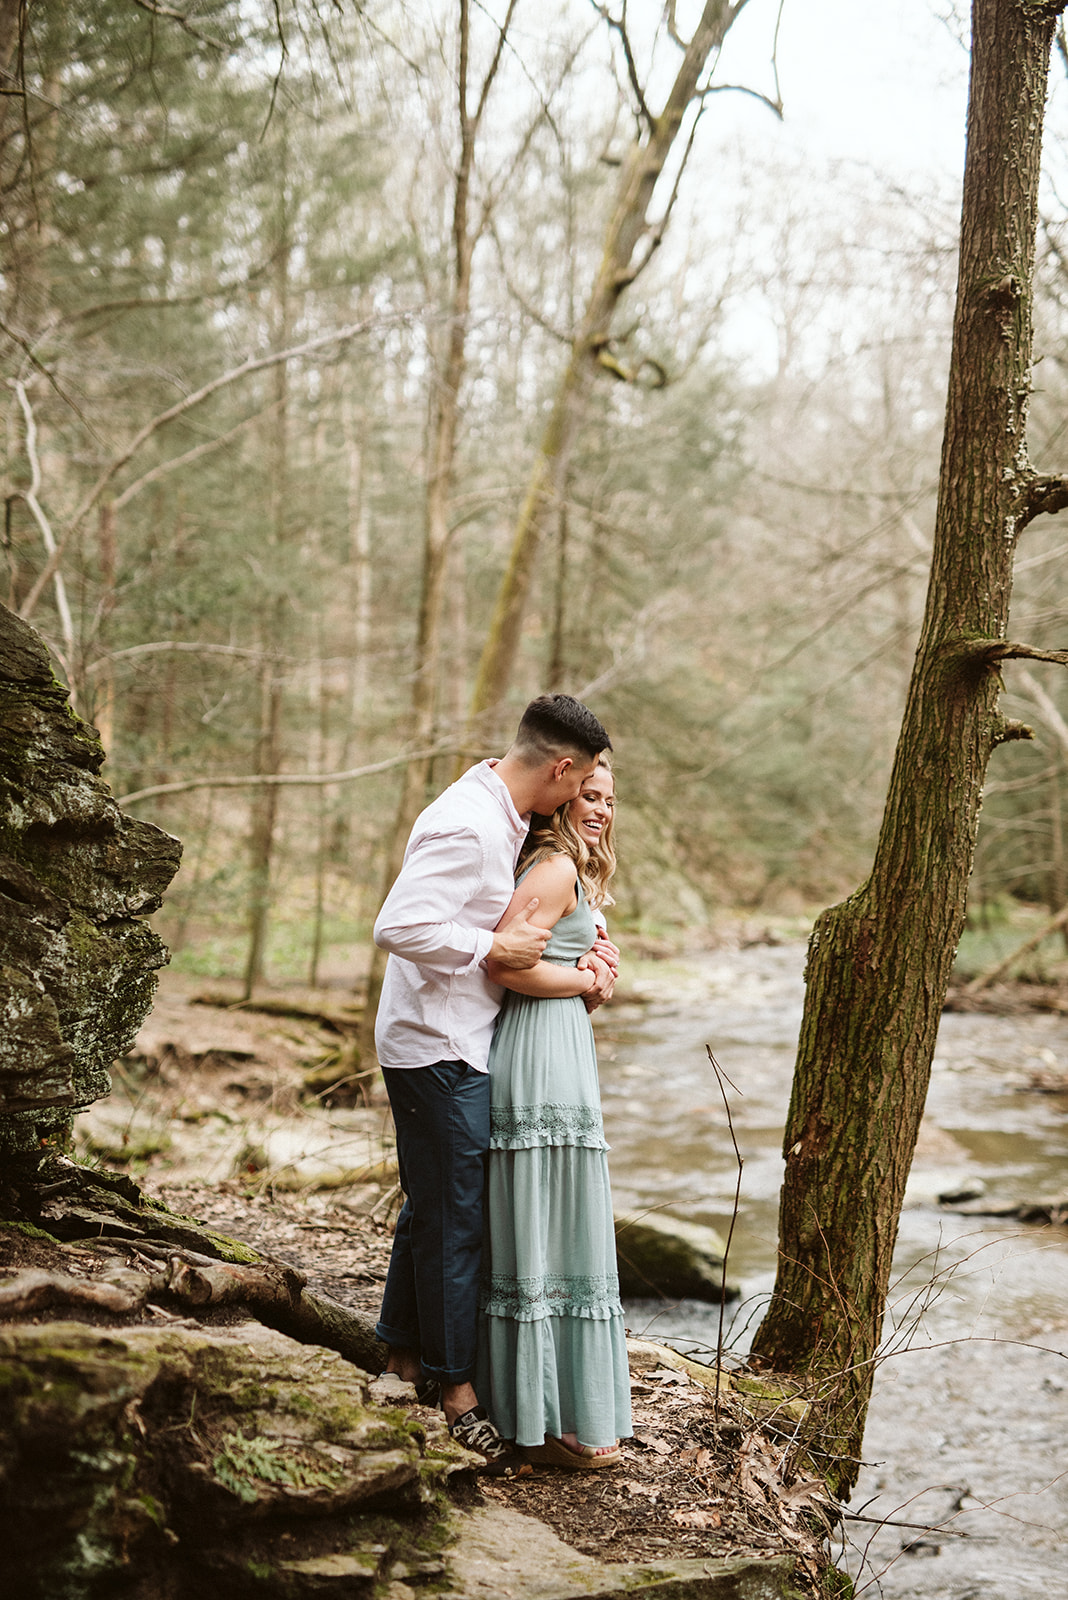 Adventurous outdoorsy engagement session at Tucquan Glen.